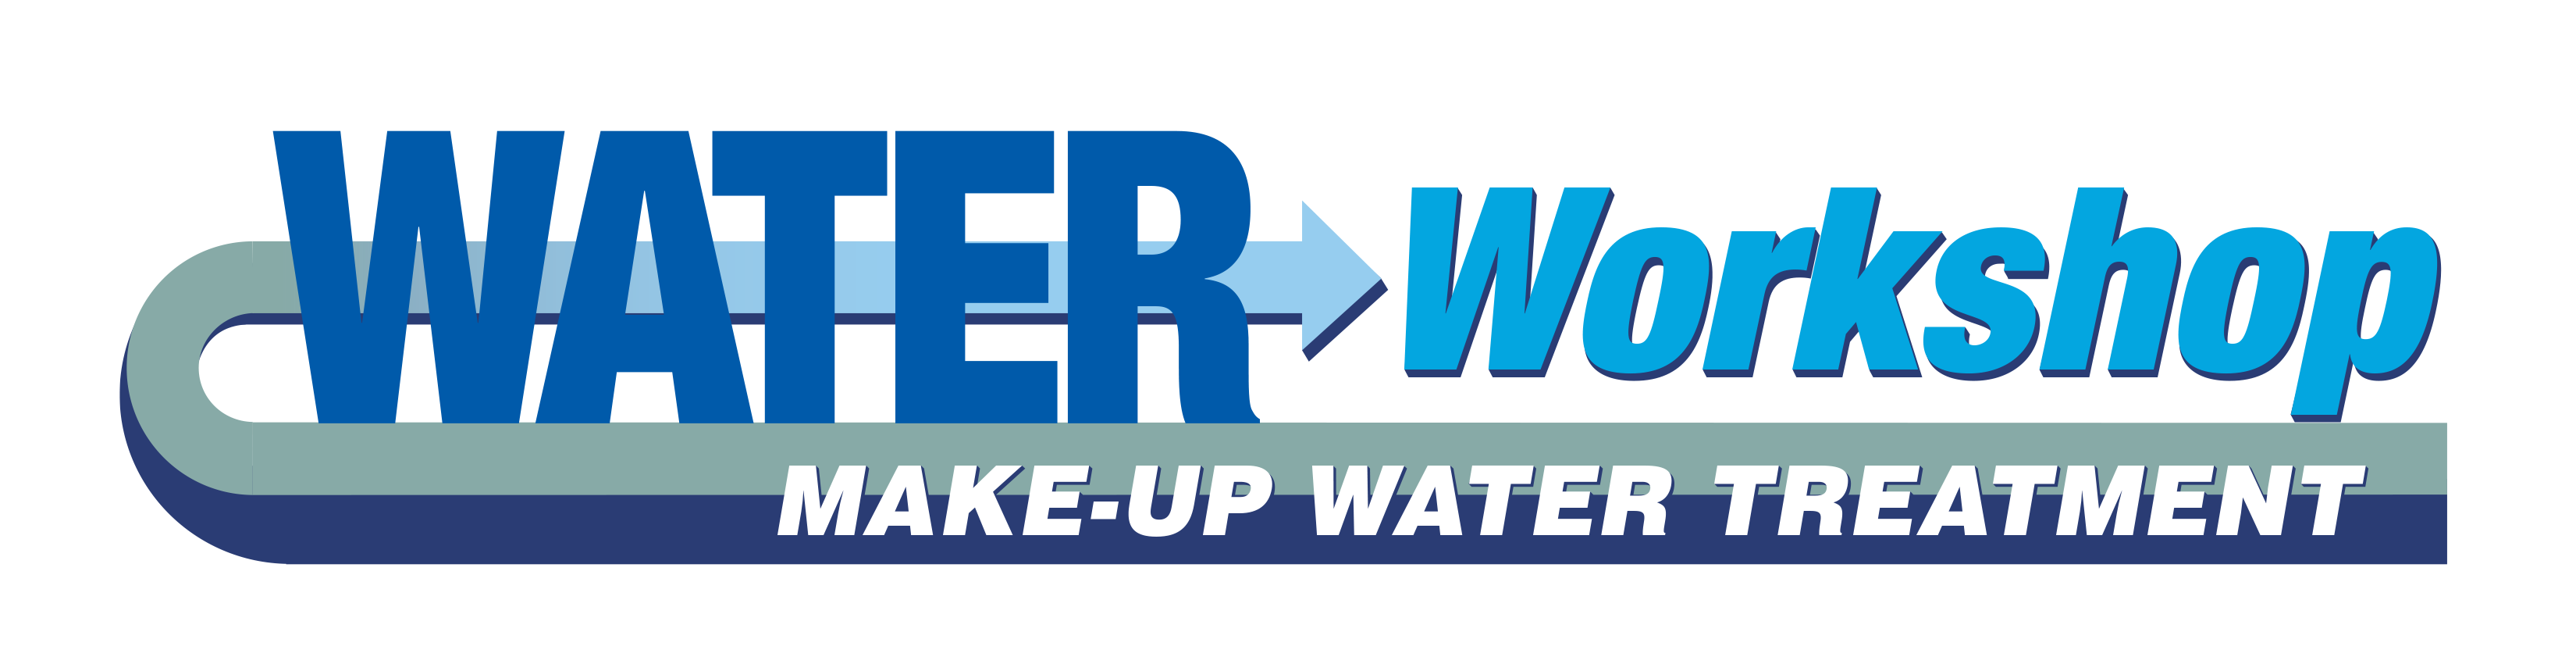 Water Workshop logo-makeup (002)